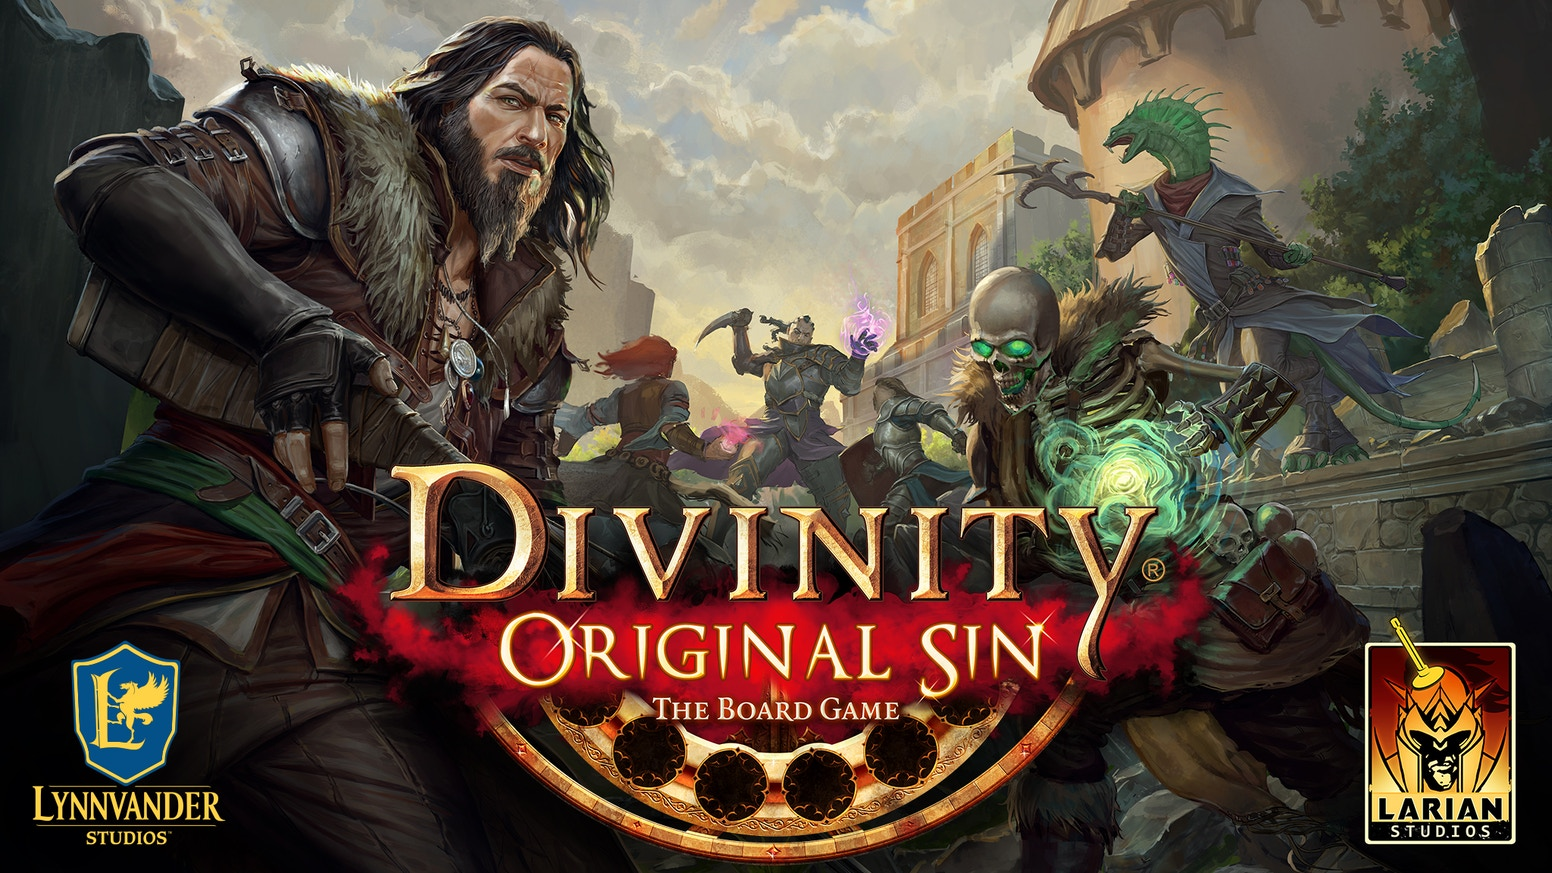 Divinity Original Sin the Board Game is a cooperative, storytelling adventure game set in the Chronicle System.